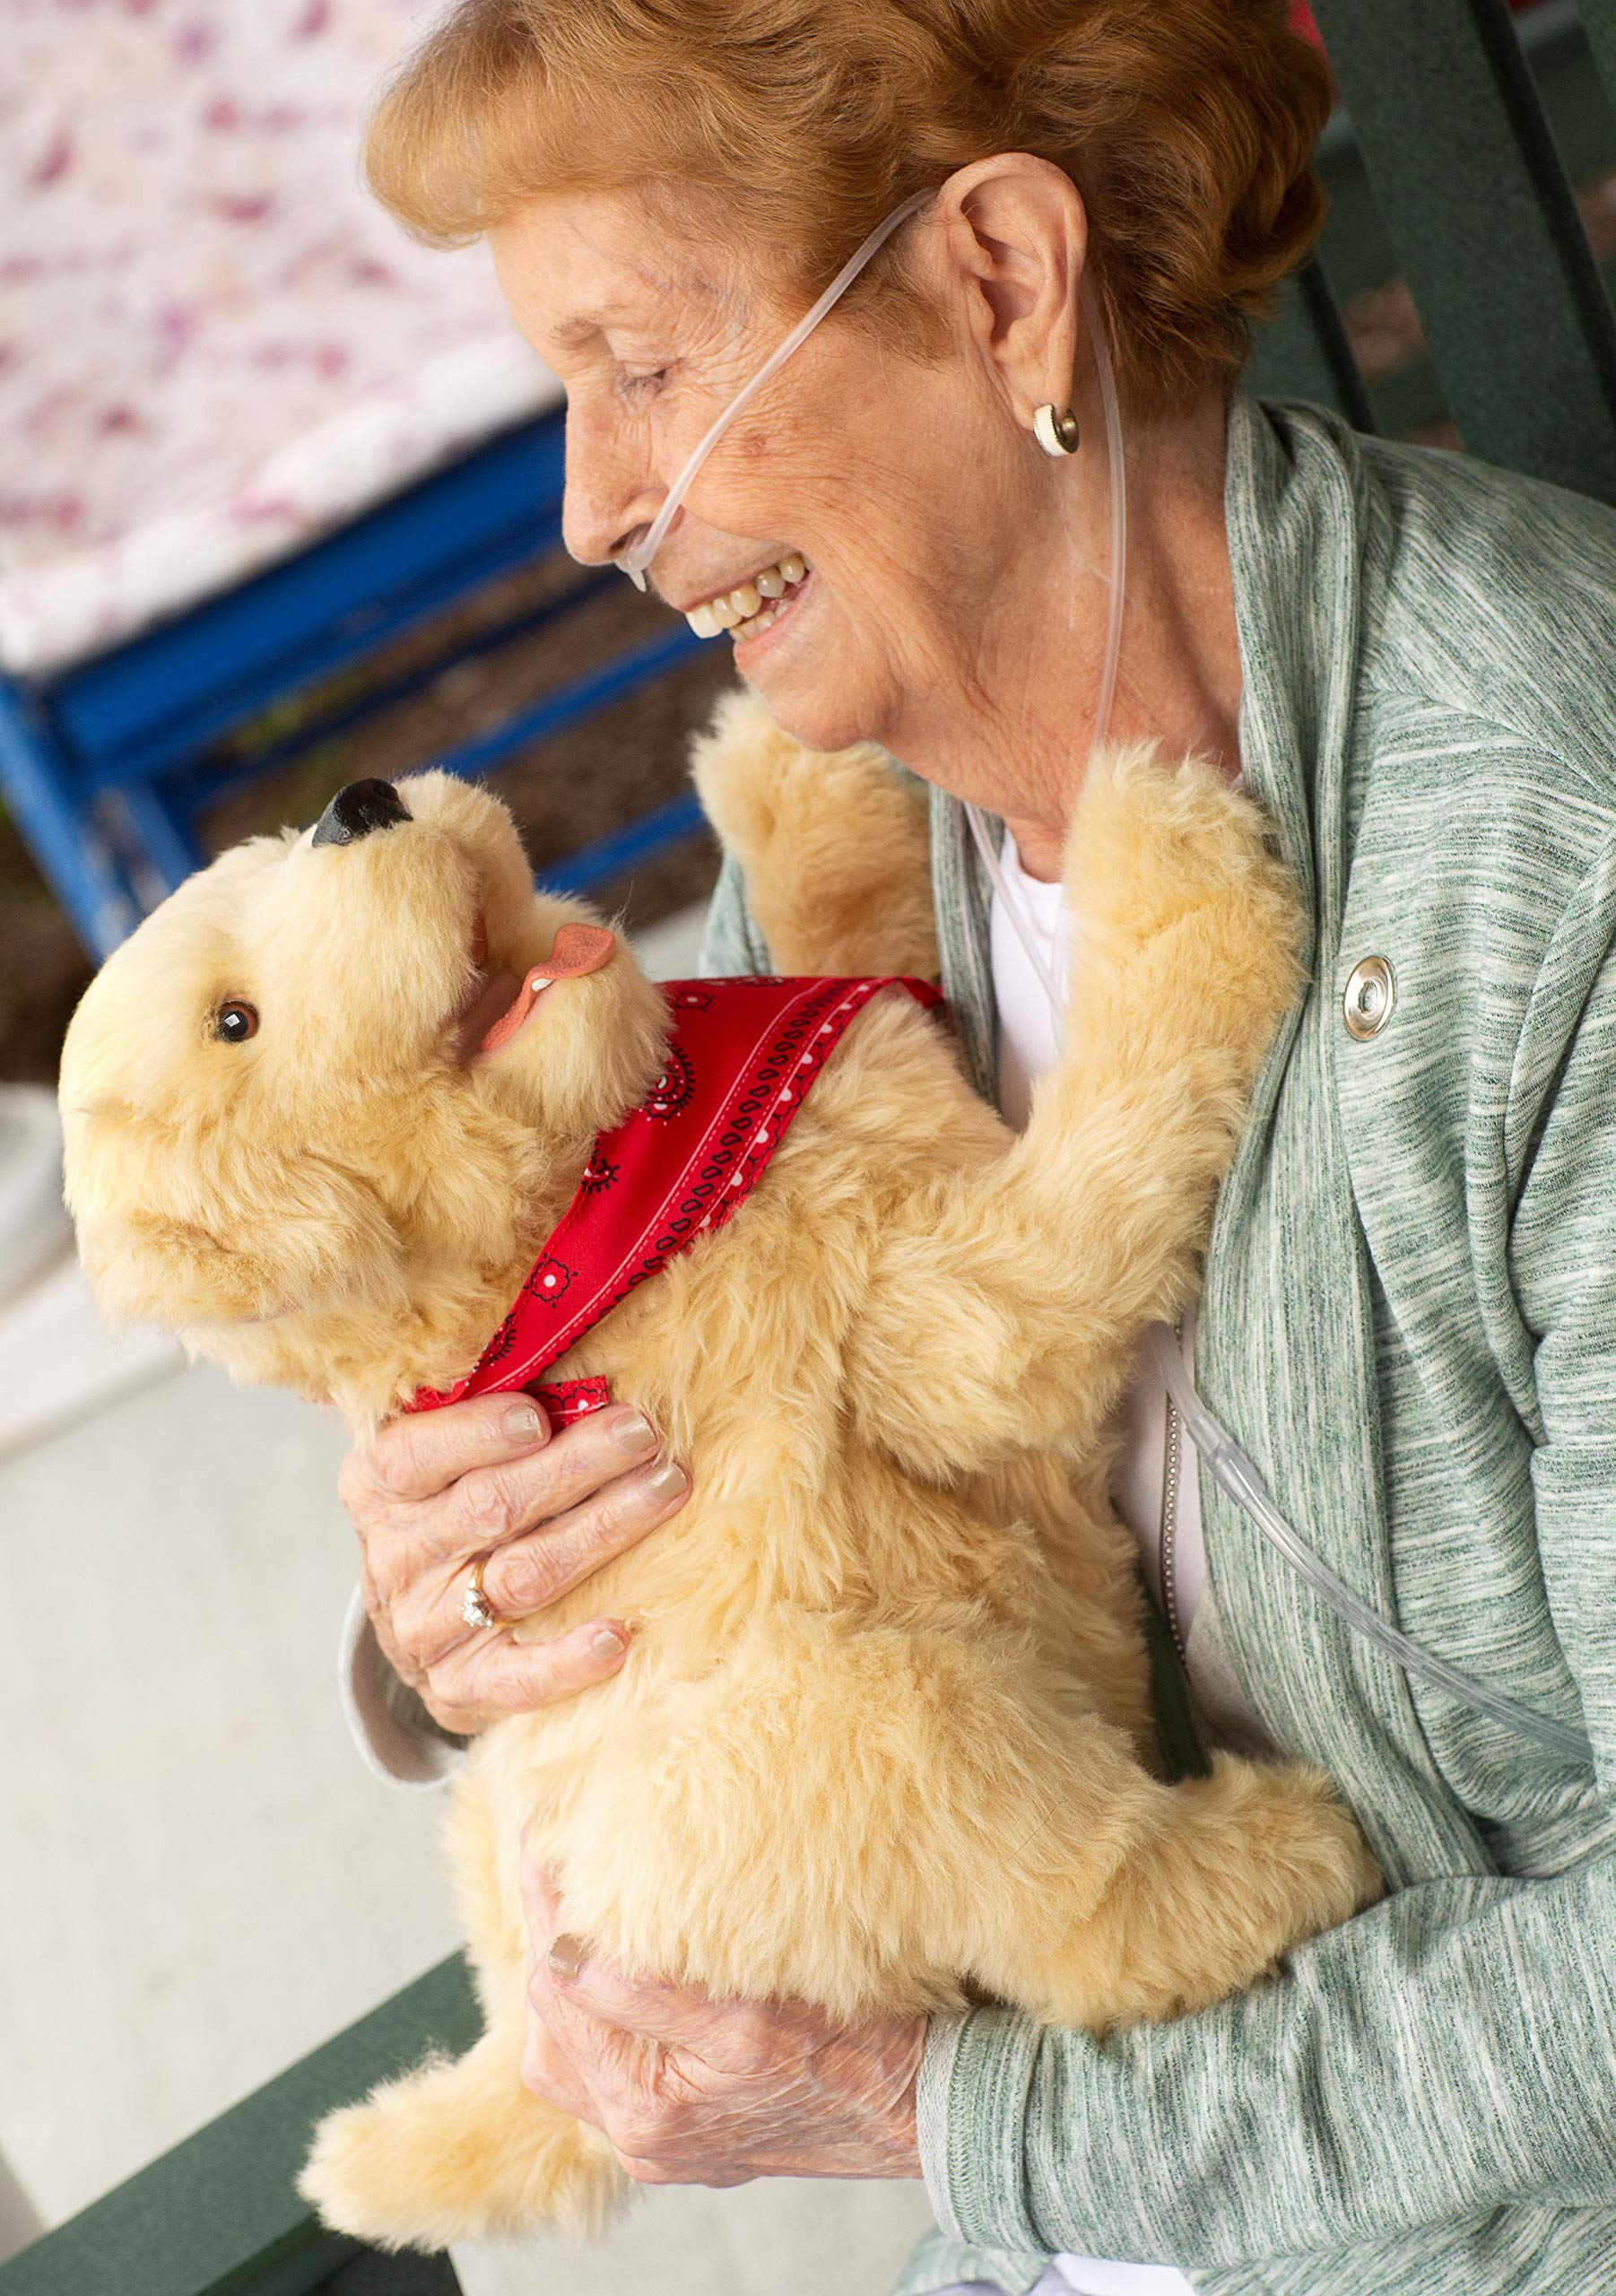 Ageless Innovation Joy For All Companion Pets Golden Pup Lifelike & Realistic by JOY FOR ALL